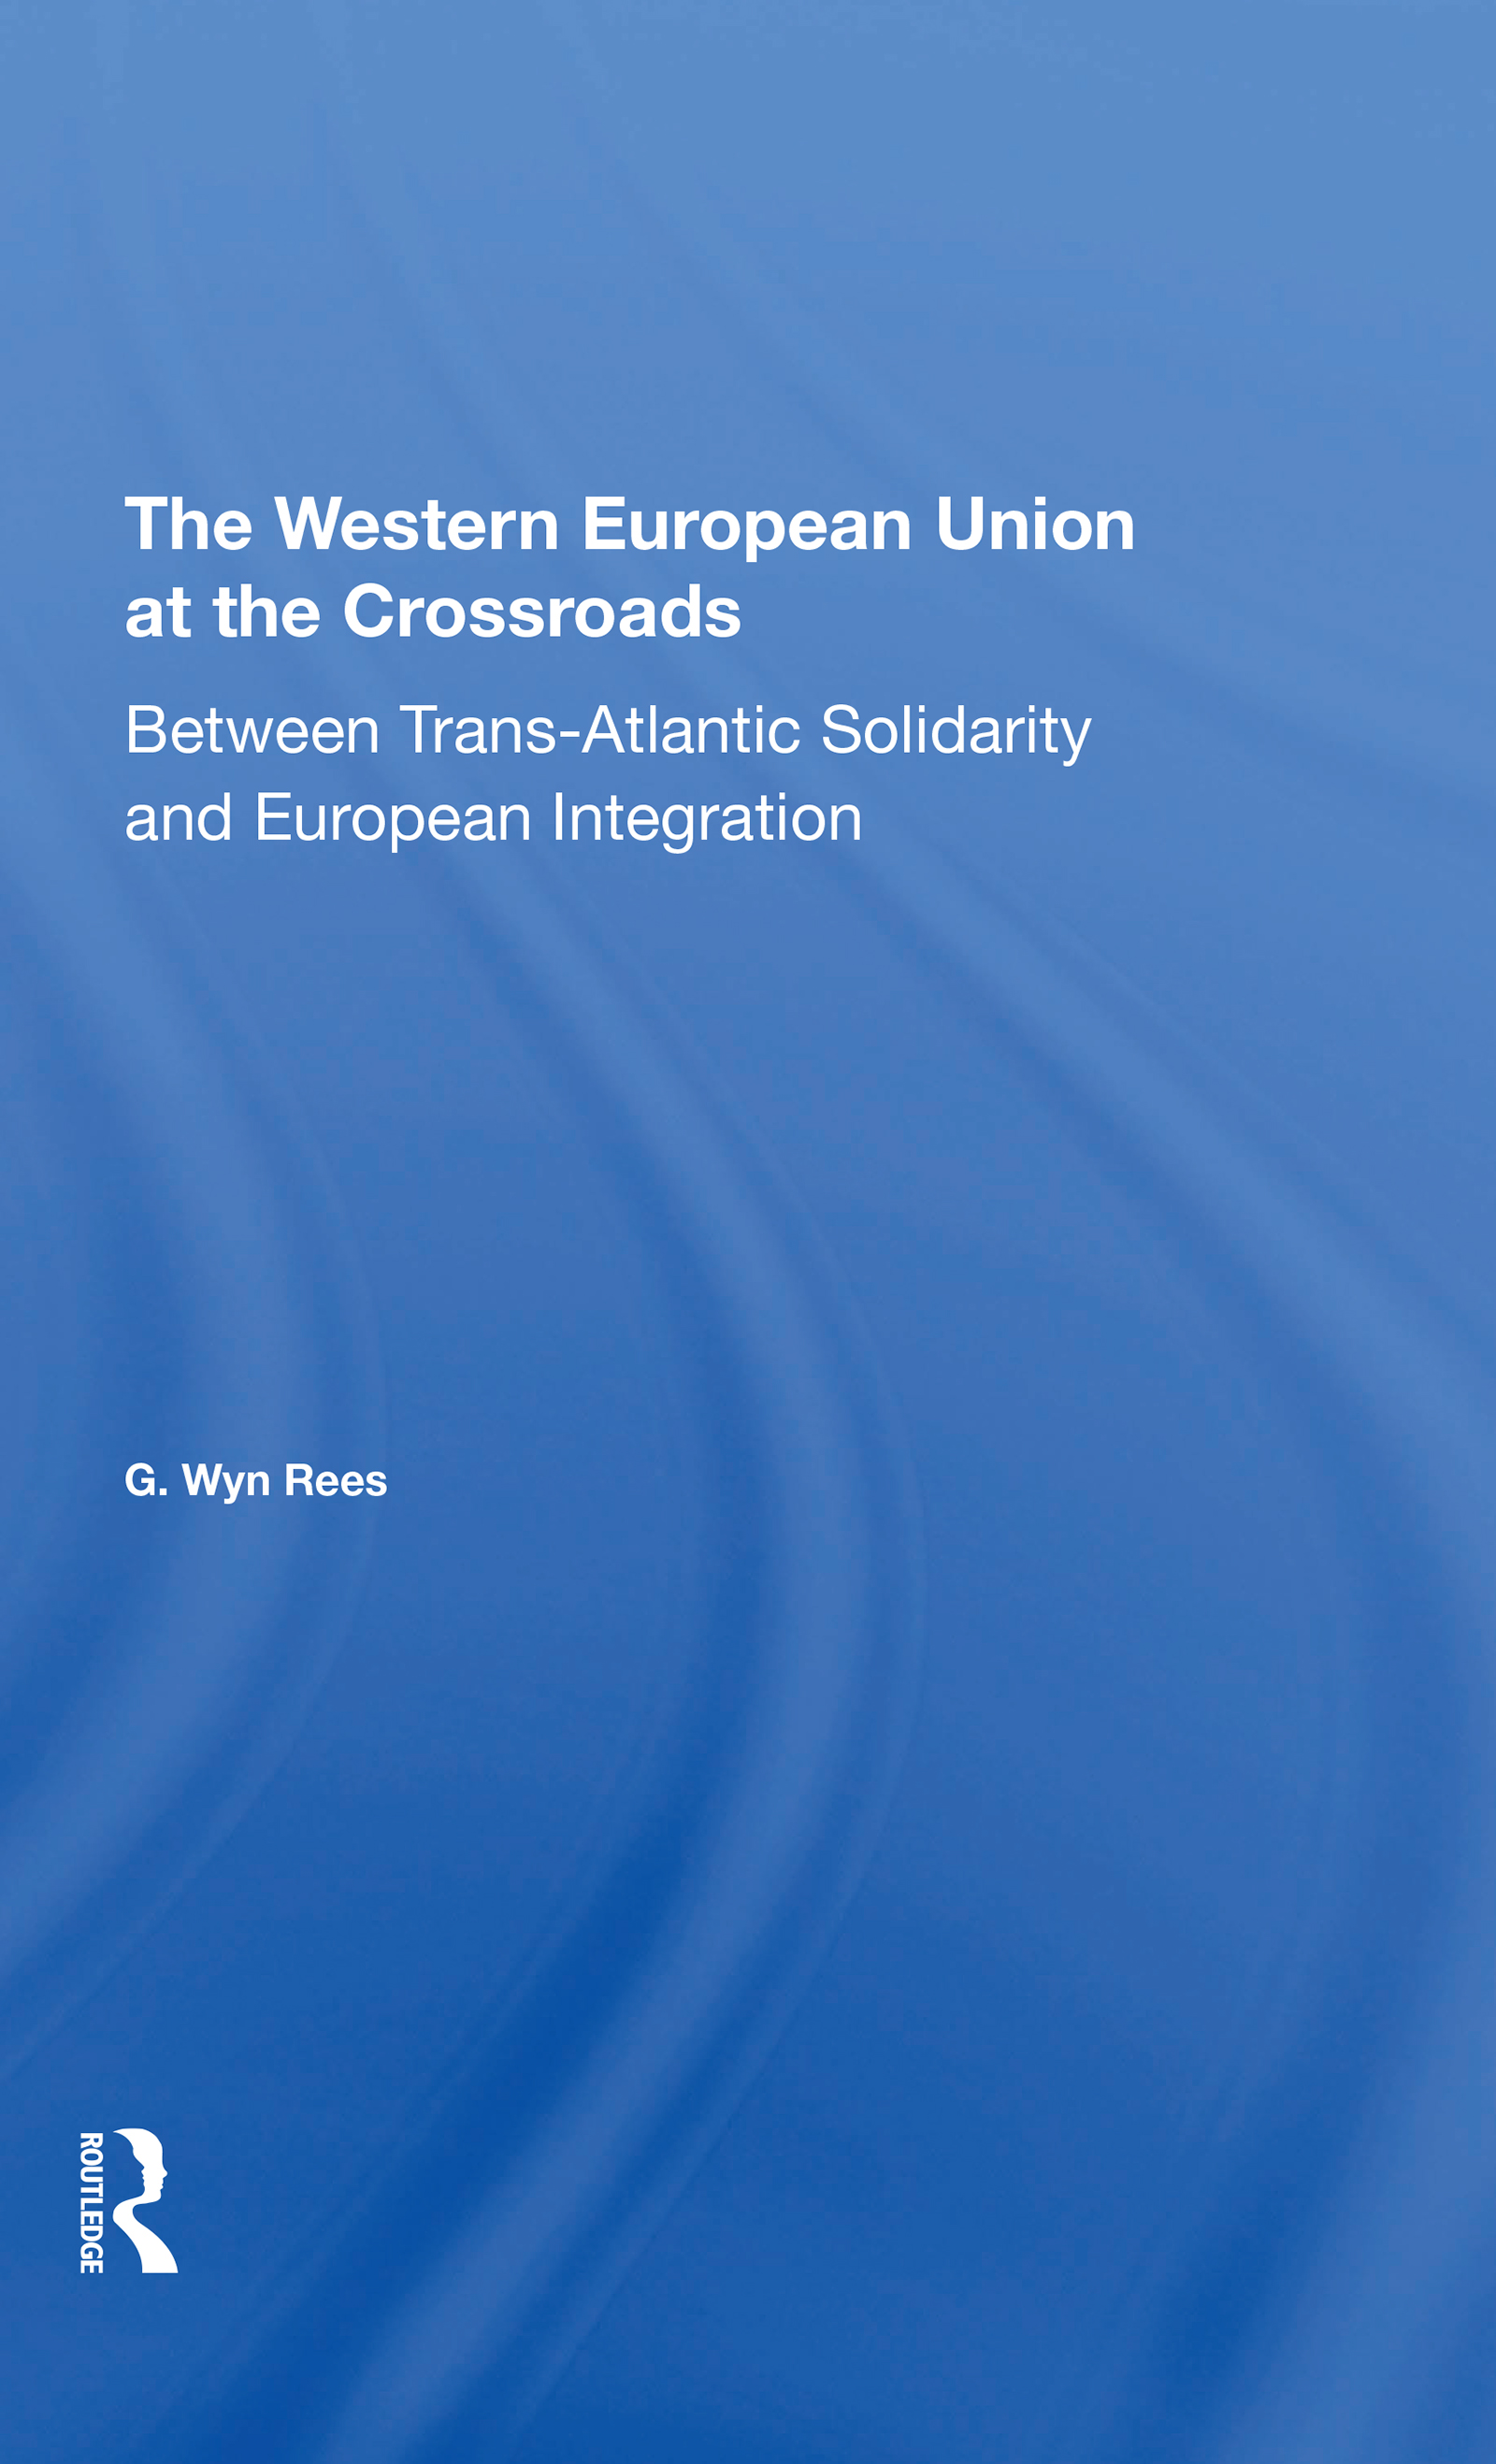 The Western European Union at the Crossroads